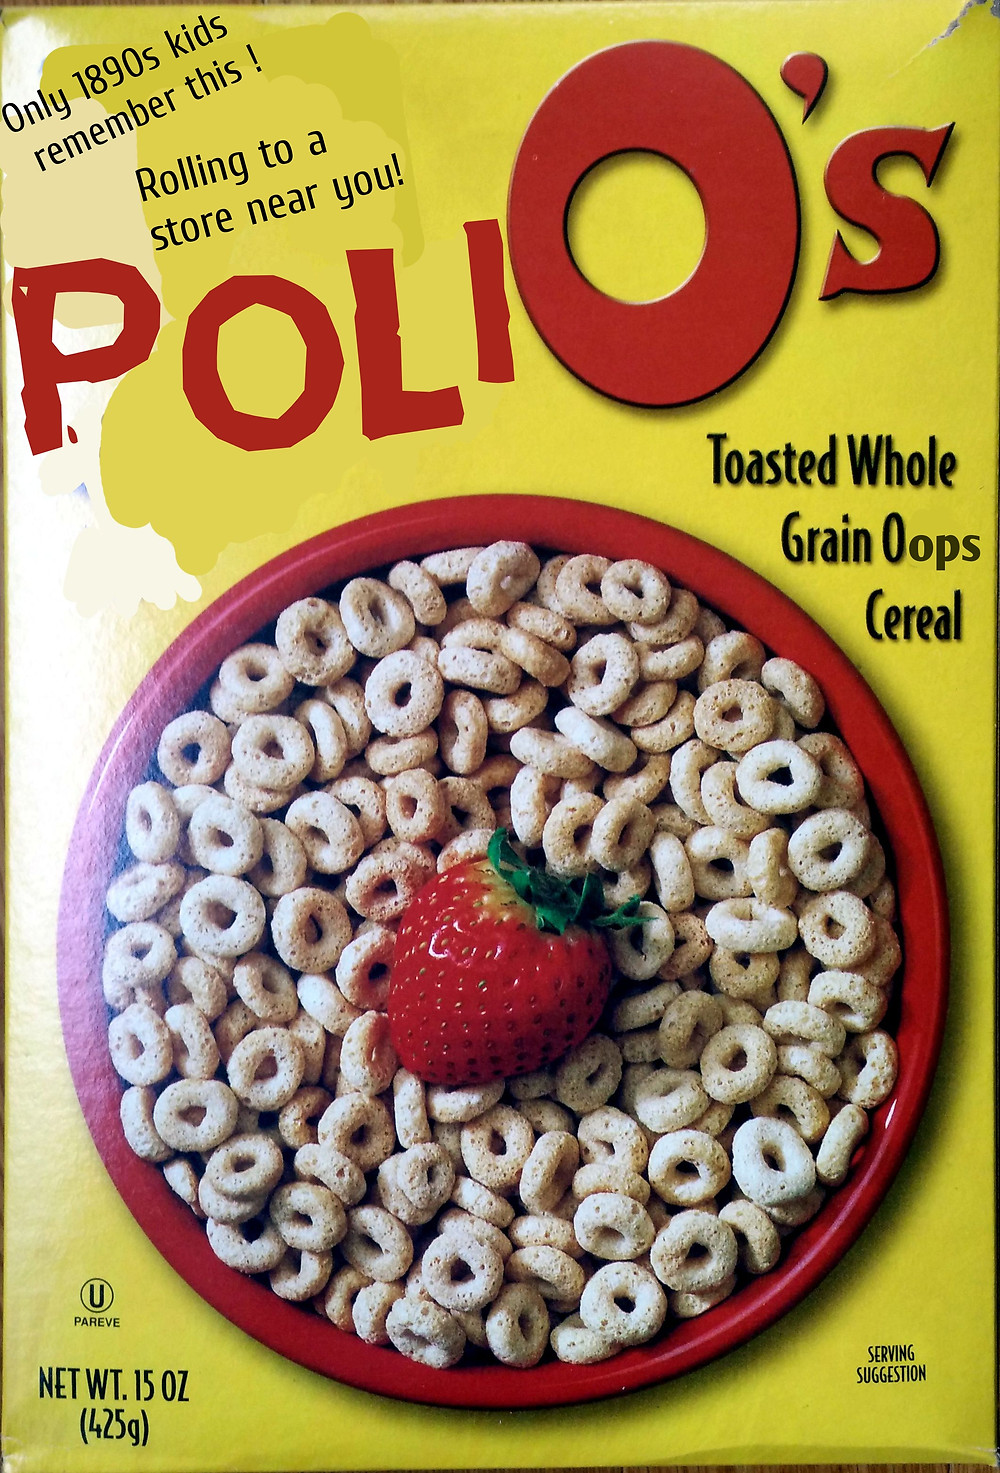 Not your dad's cereal, but maybe your granddad's